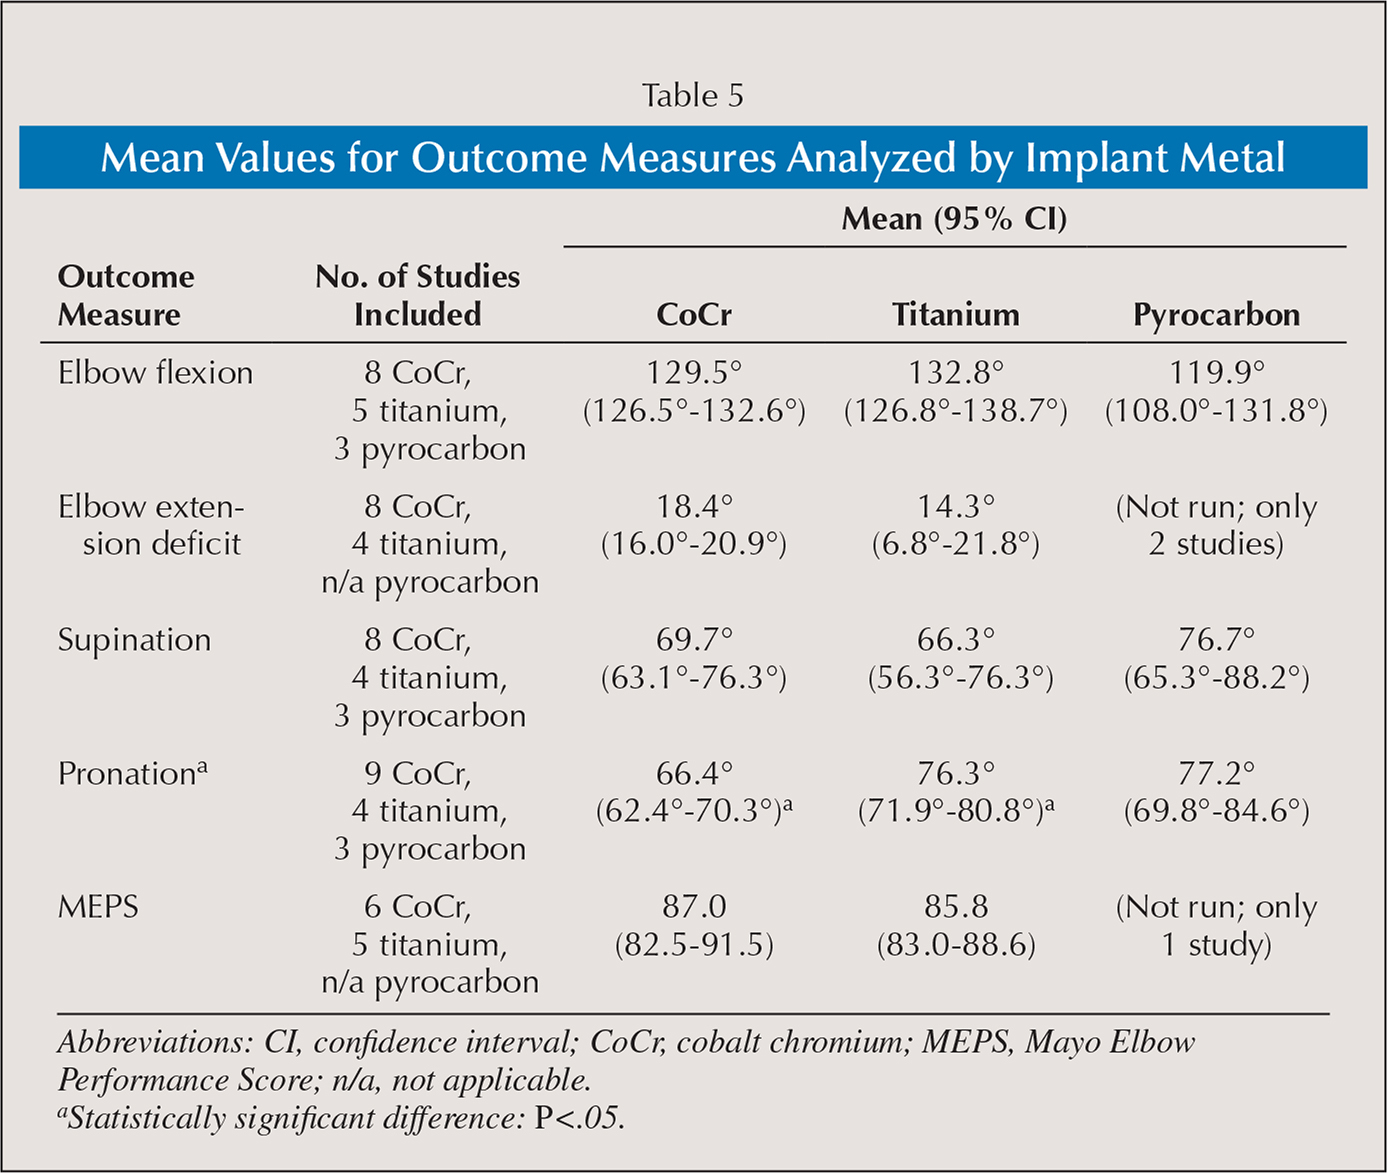 Mean Values for Outcome Measures Analyzed by Implant Metal